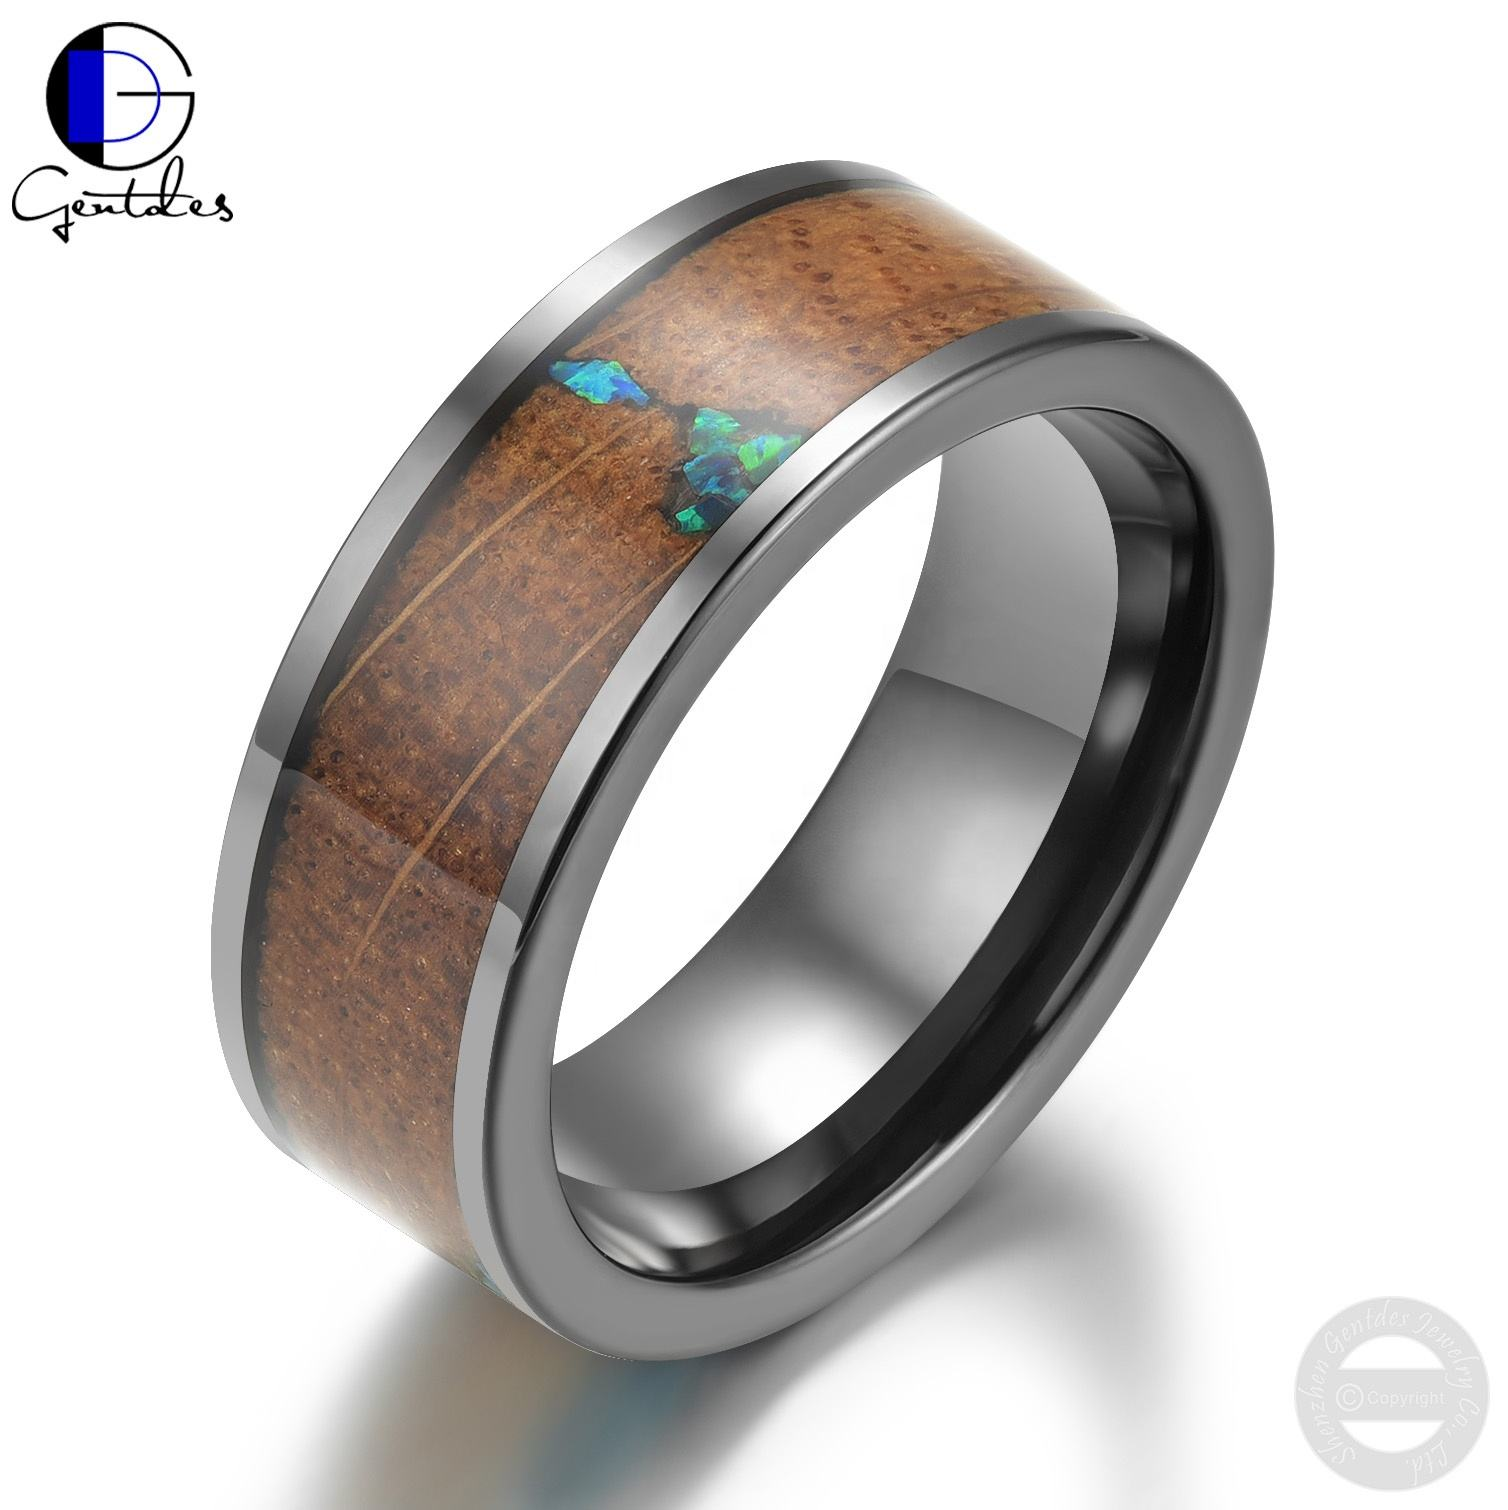 Gentdes Jewelry Custom Tungsten Wedding Band Inlay Whisky Barrel Wood Opal Ring